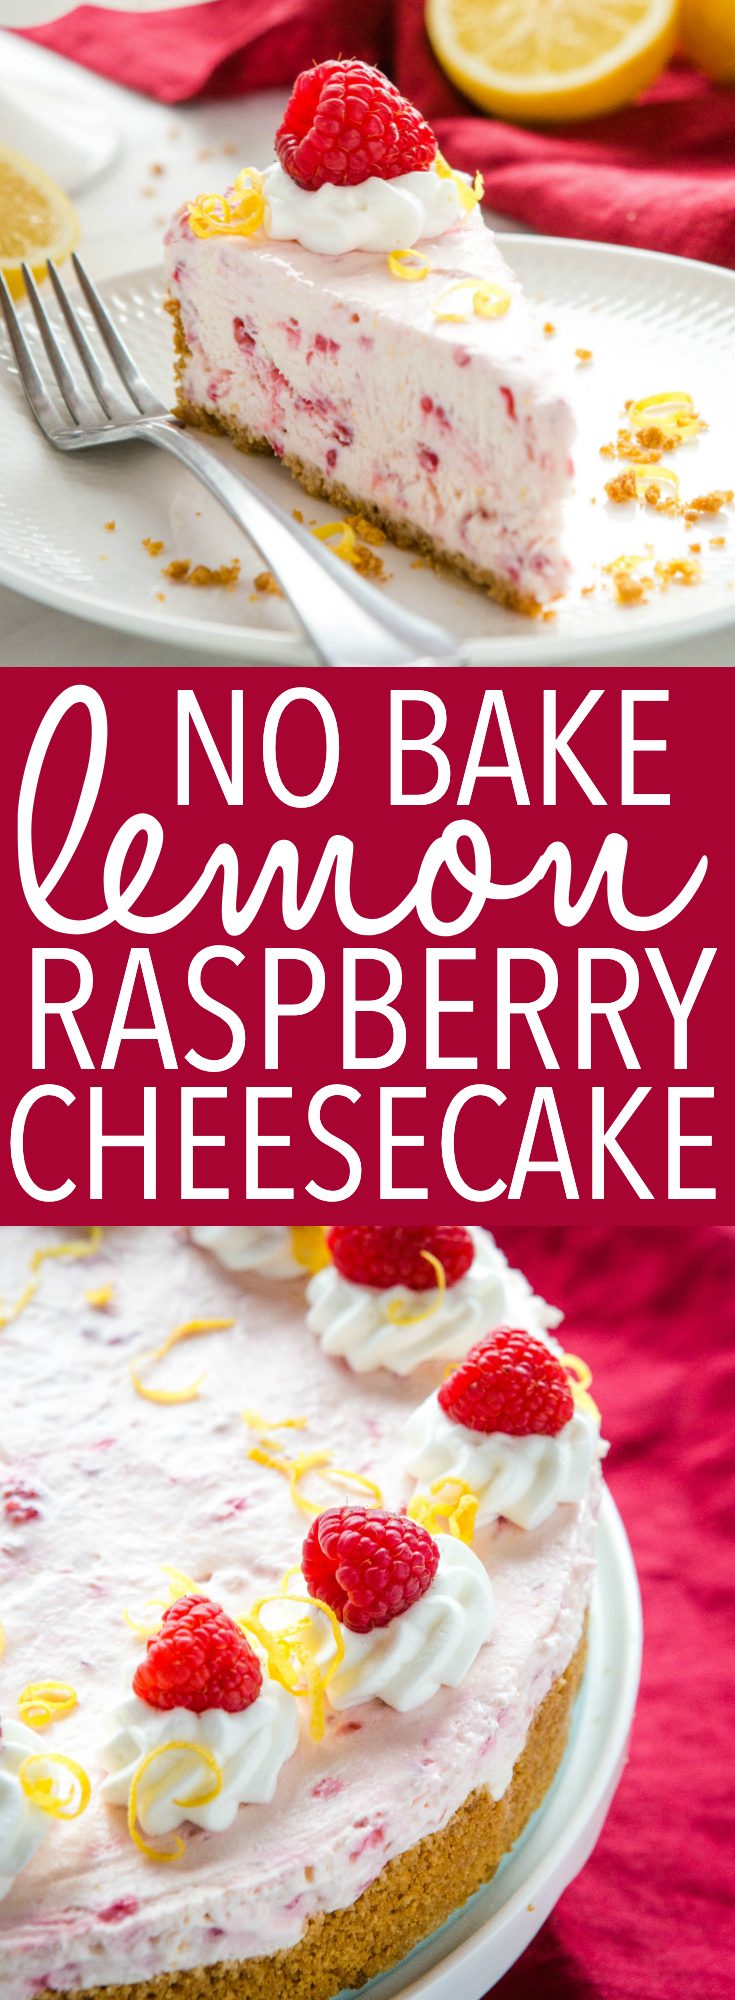 This Easy No Bake Lemon Raspberry Cheesecake is the perfect easy-to-make cheesecake that's ultra creamy & delicious, and packed with raspberries & lemon! Recipe from thebusybaker.ca! #lemonraspberry #cheesecake #nobakecheesecake #fruitcheesecake #summerdessert #nobakedessert via @busybakerblog